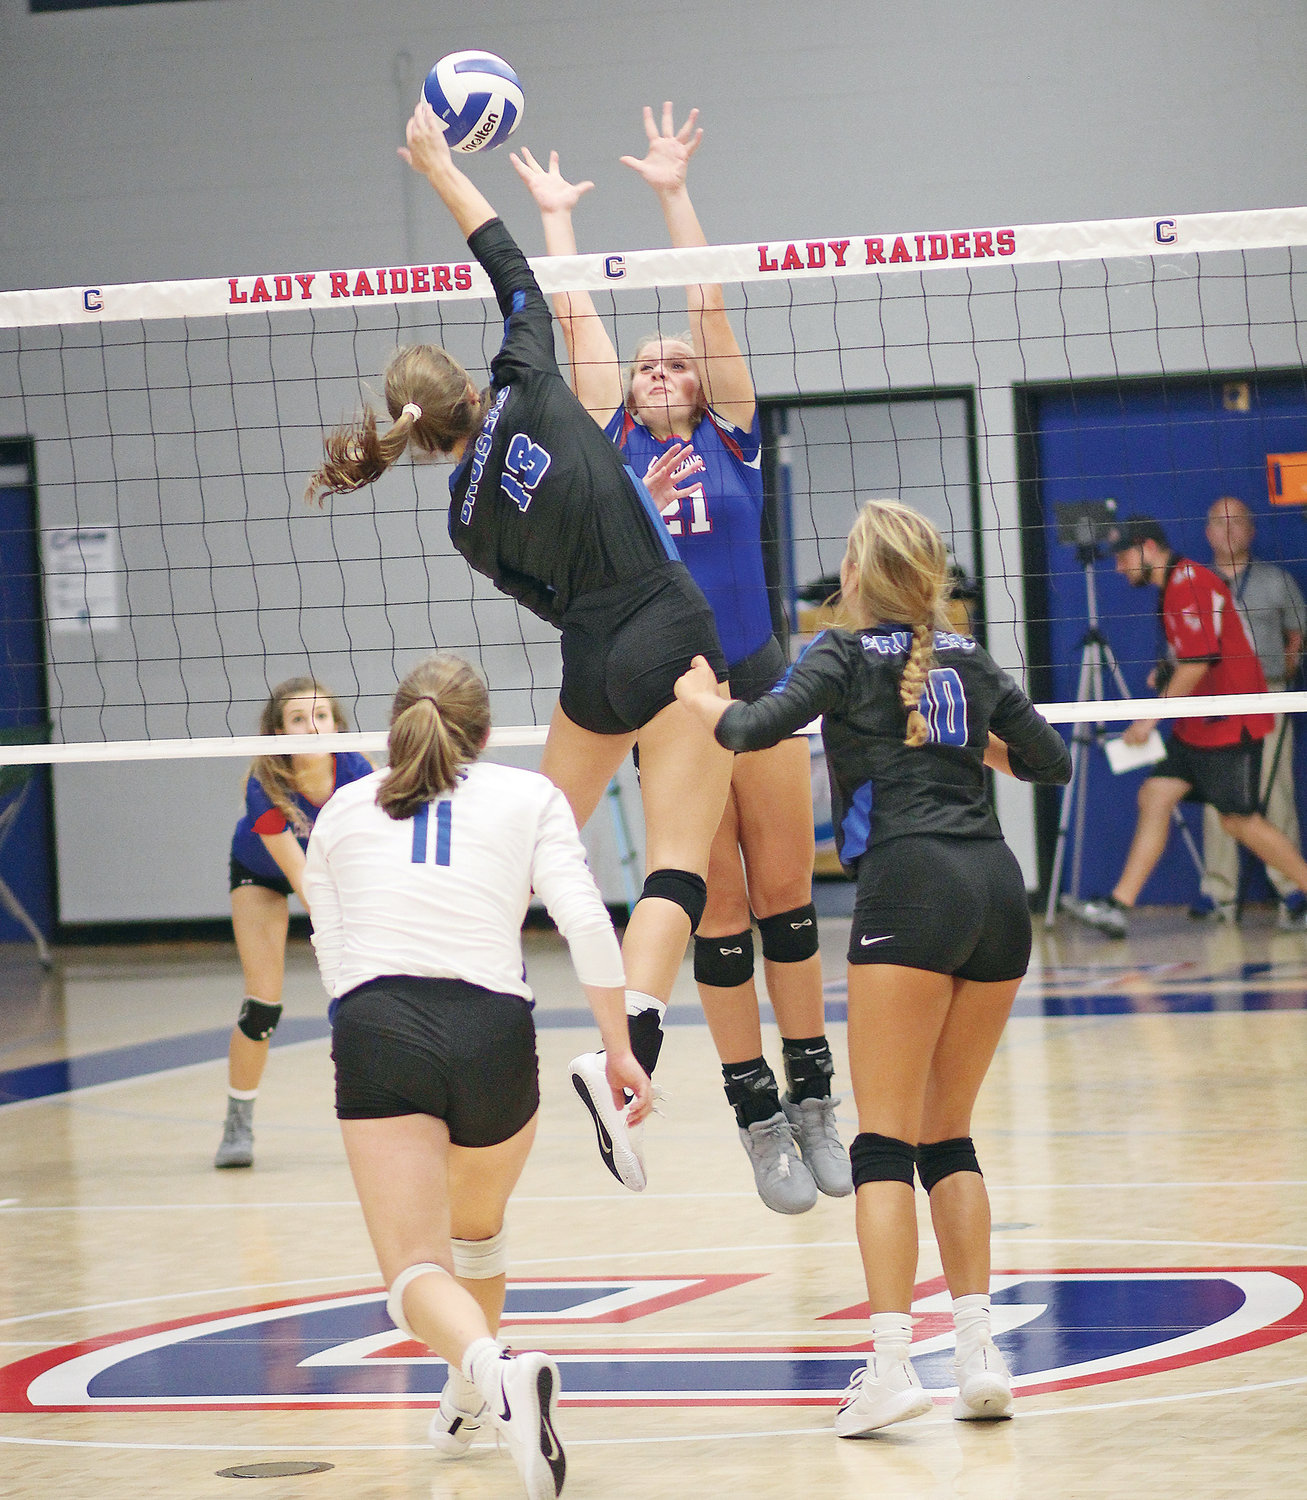 LADY RAIDERS middle blocker Jordan Whitcraft (21) goes for a block against GPS Monday, inside the volleyball gym at Cleveland High School.